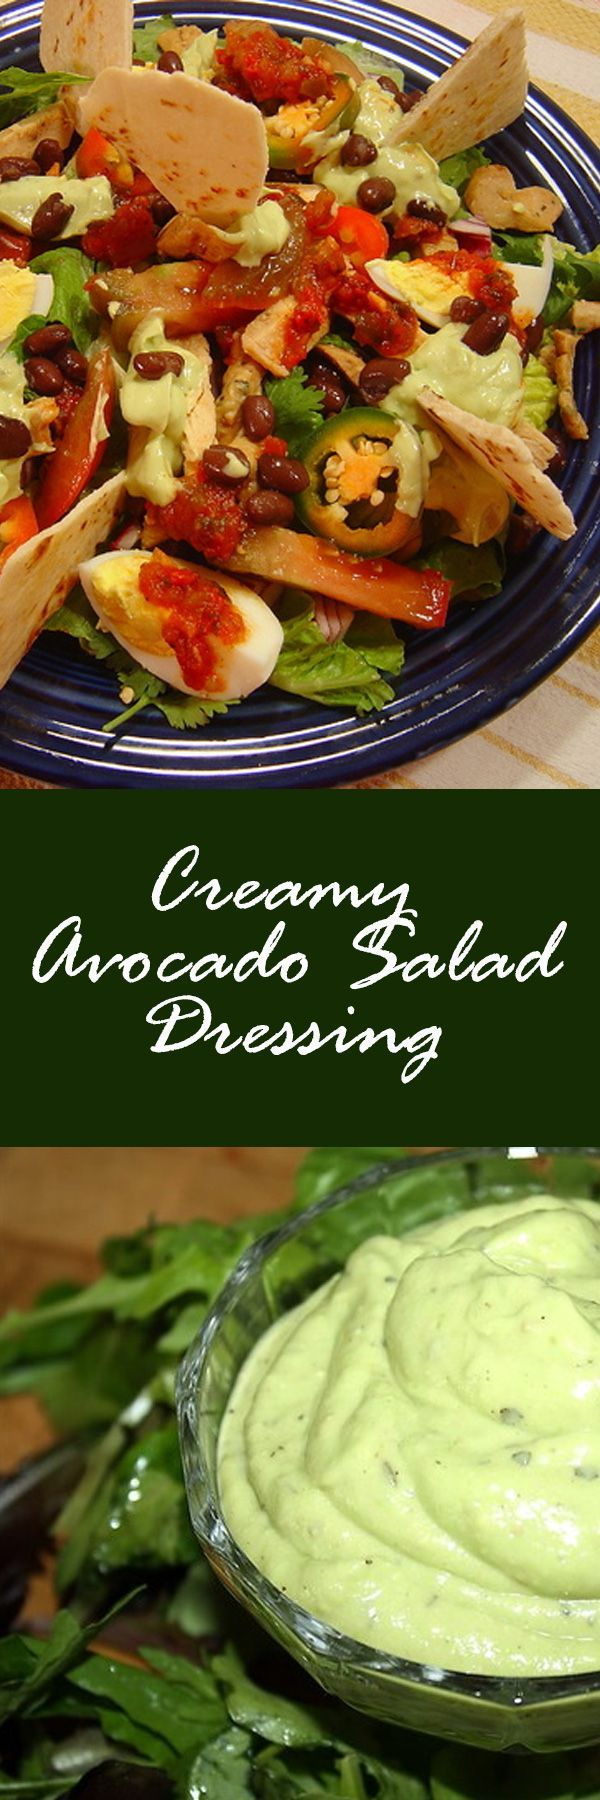 What better to serve up with Taco Salad than a Creamy Avocado Salad Dressing recipe? Yummy!